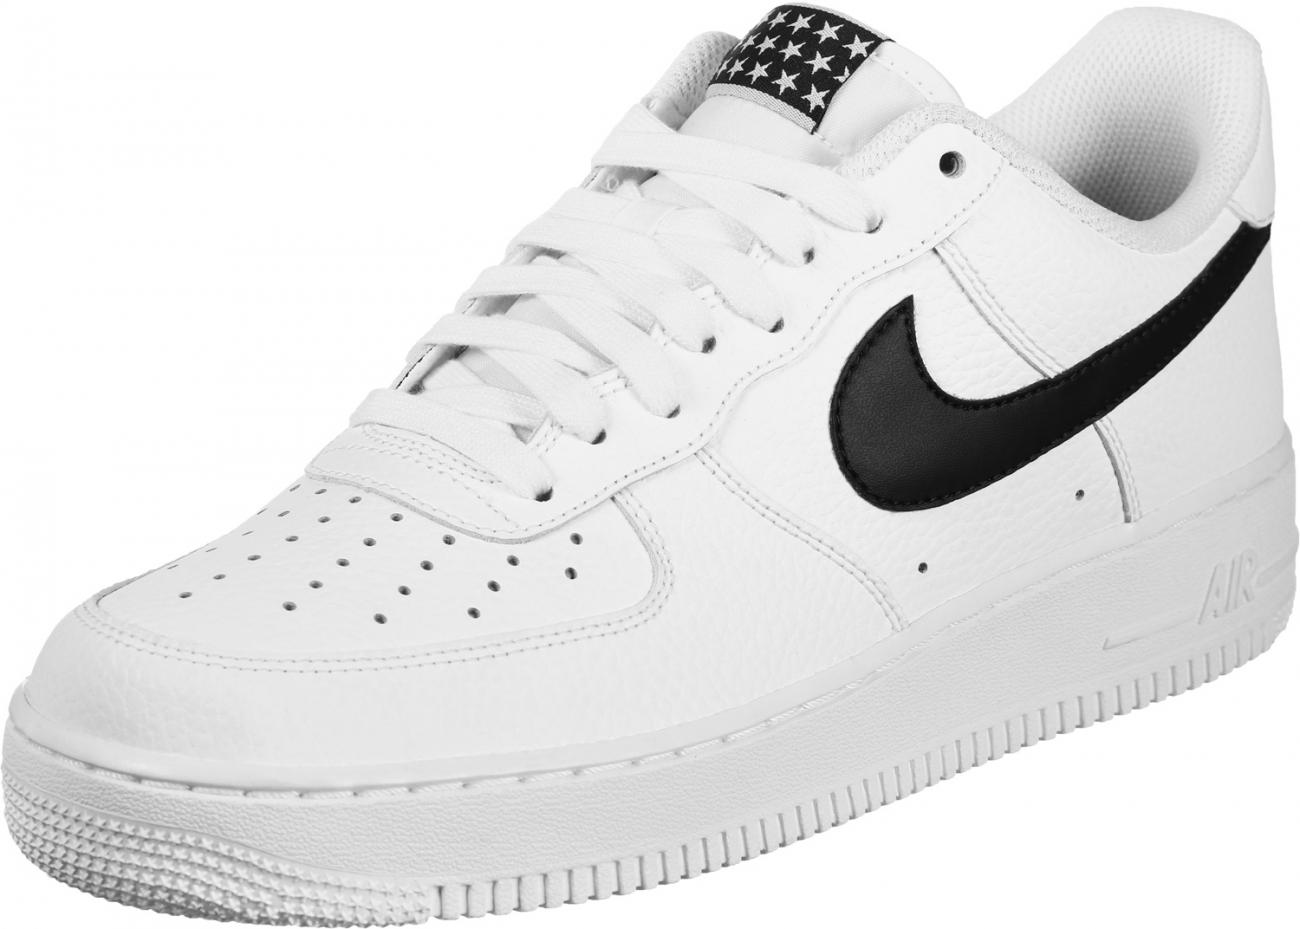 aire force one homme,Nike Air Force 1 Homme Blanc - Nike Air Force ...